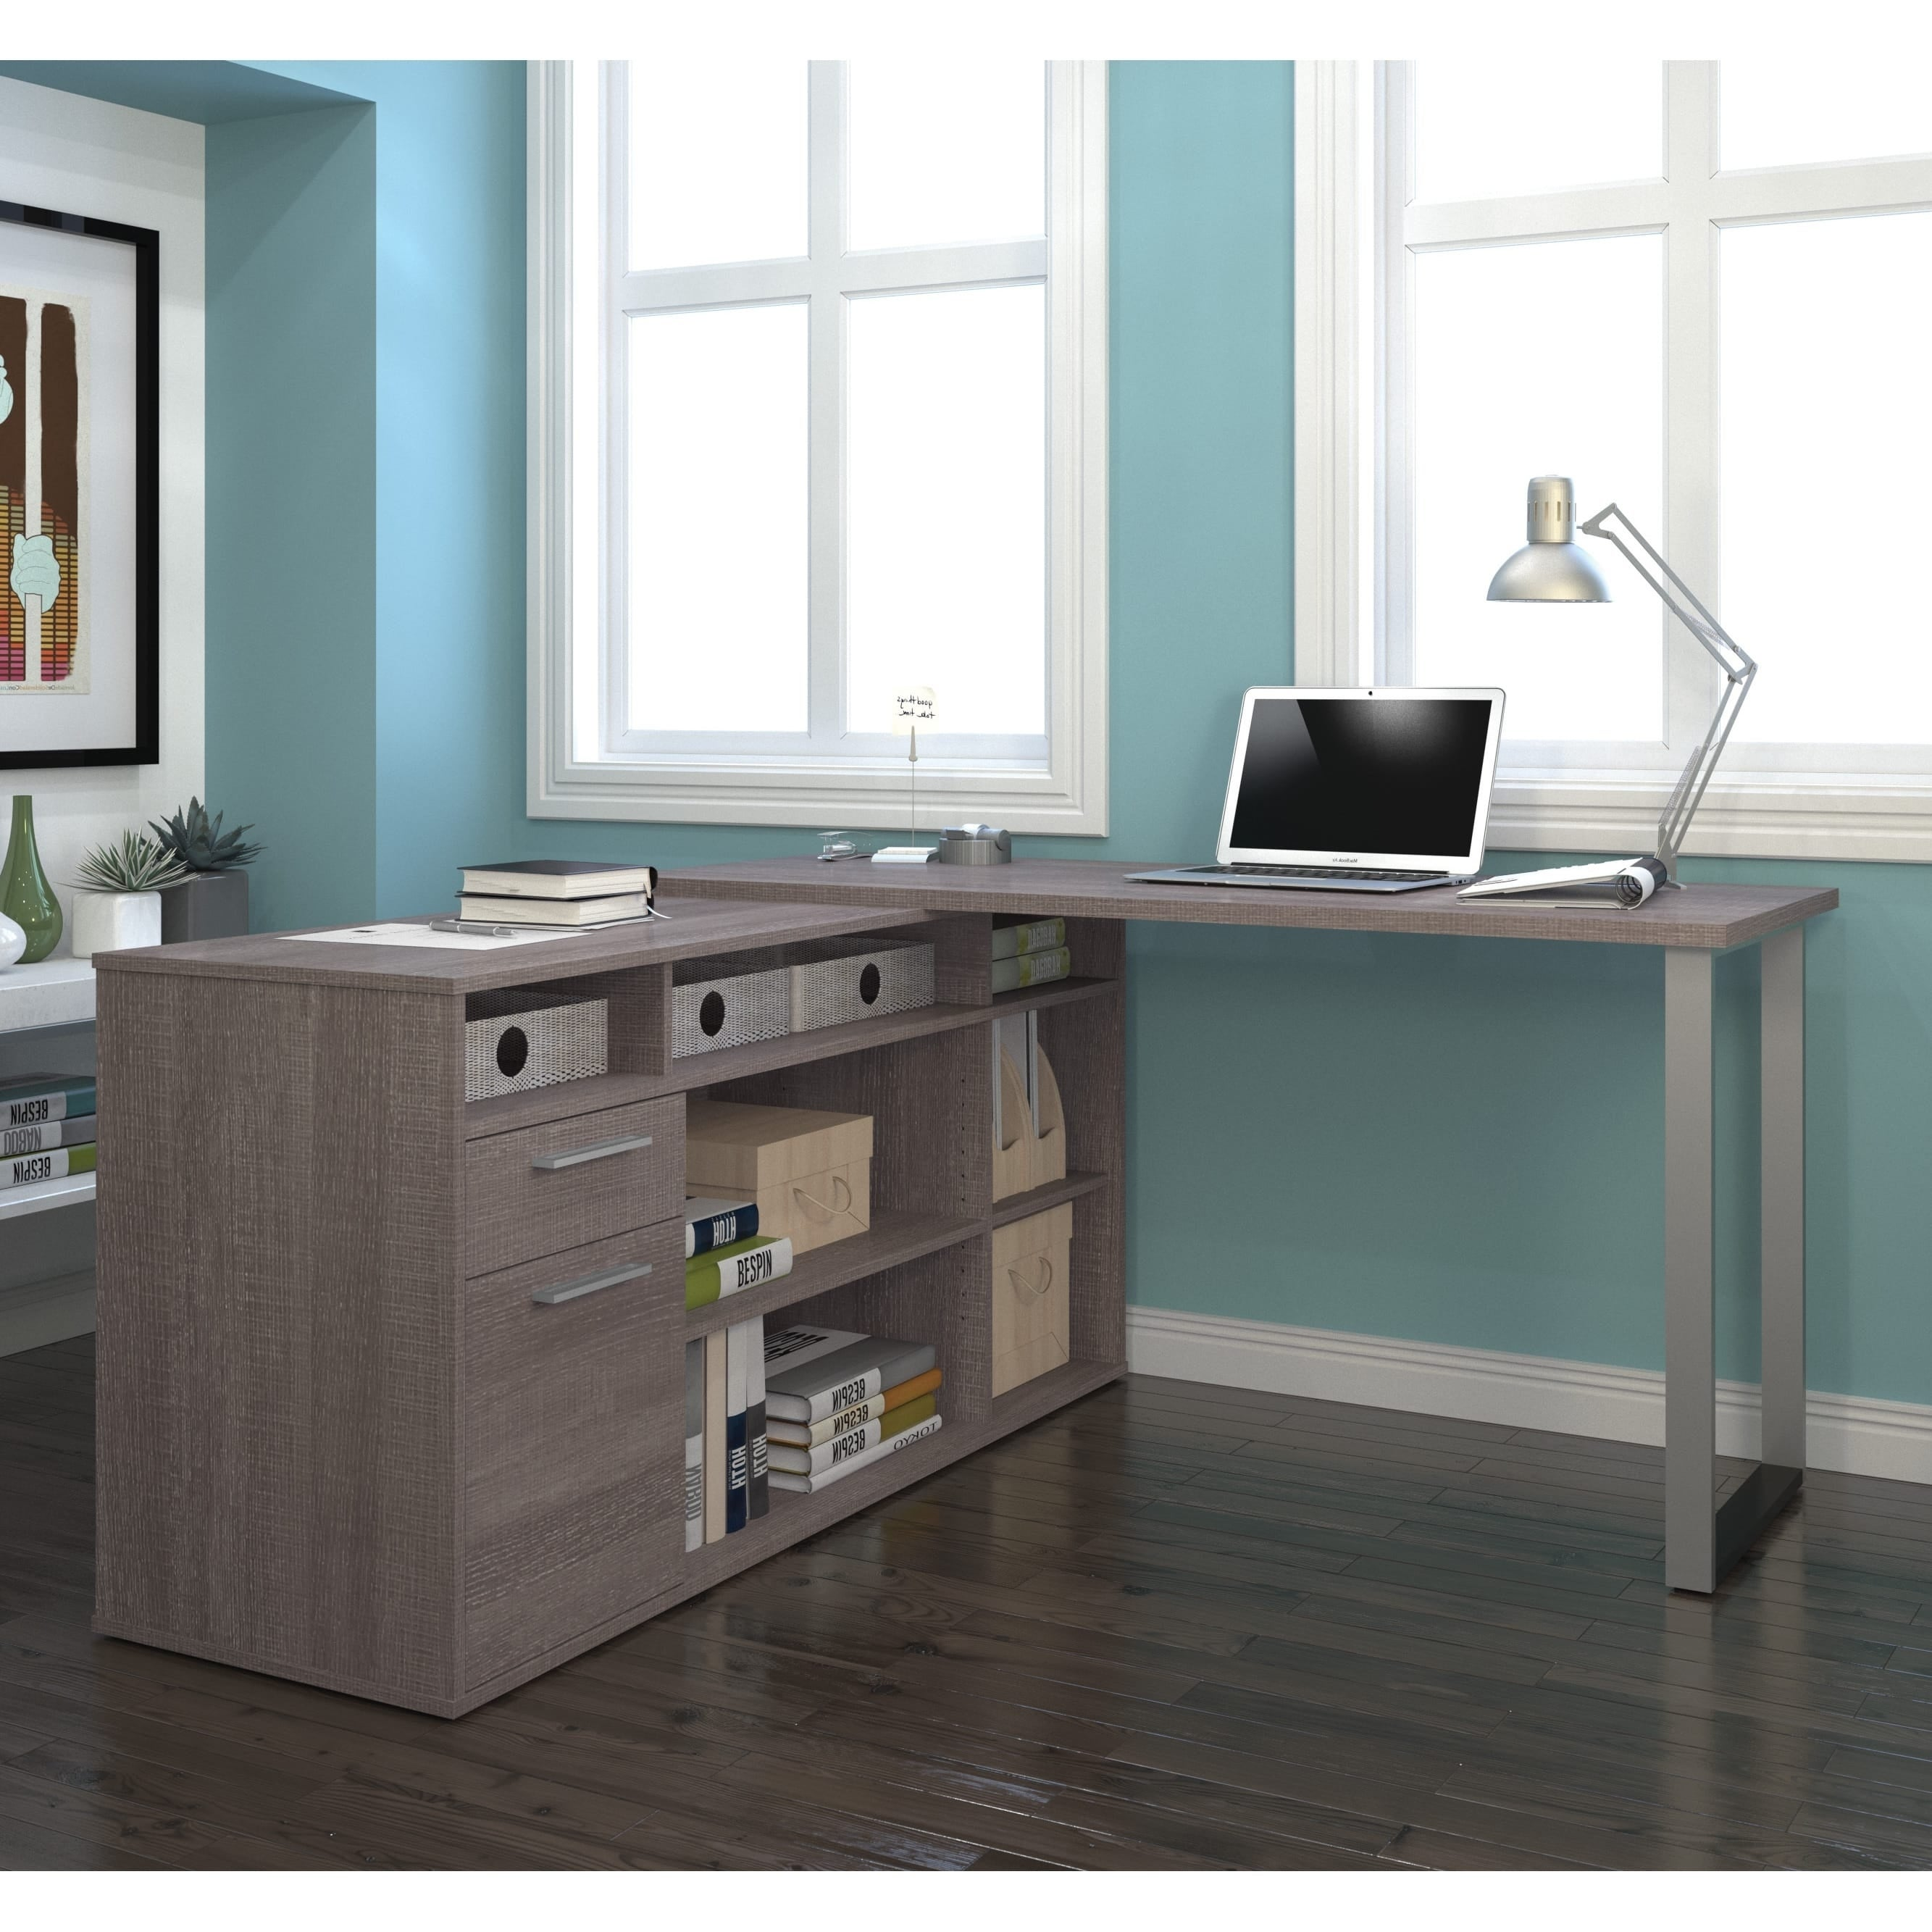 furniture plus shaped for office shelves and home with wooden white drawer cabinet cabinets small printer desk file spaces filing corner l ideas desks storage